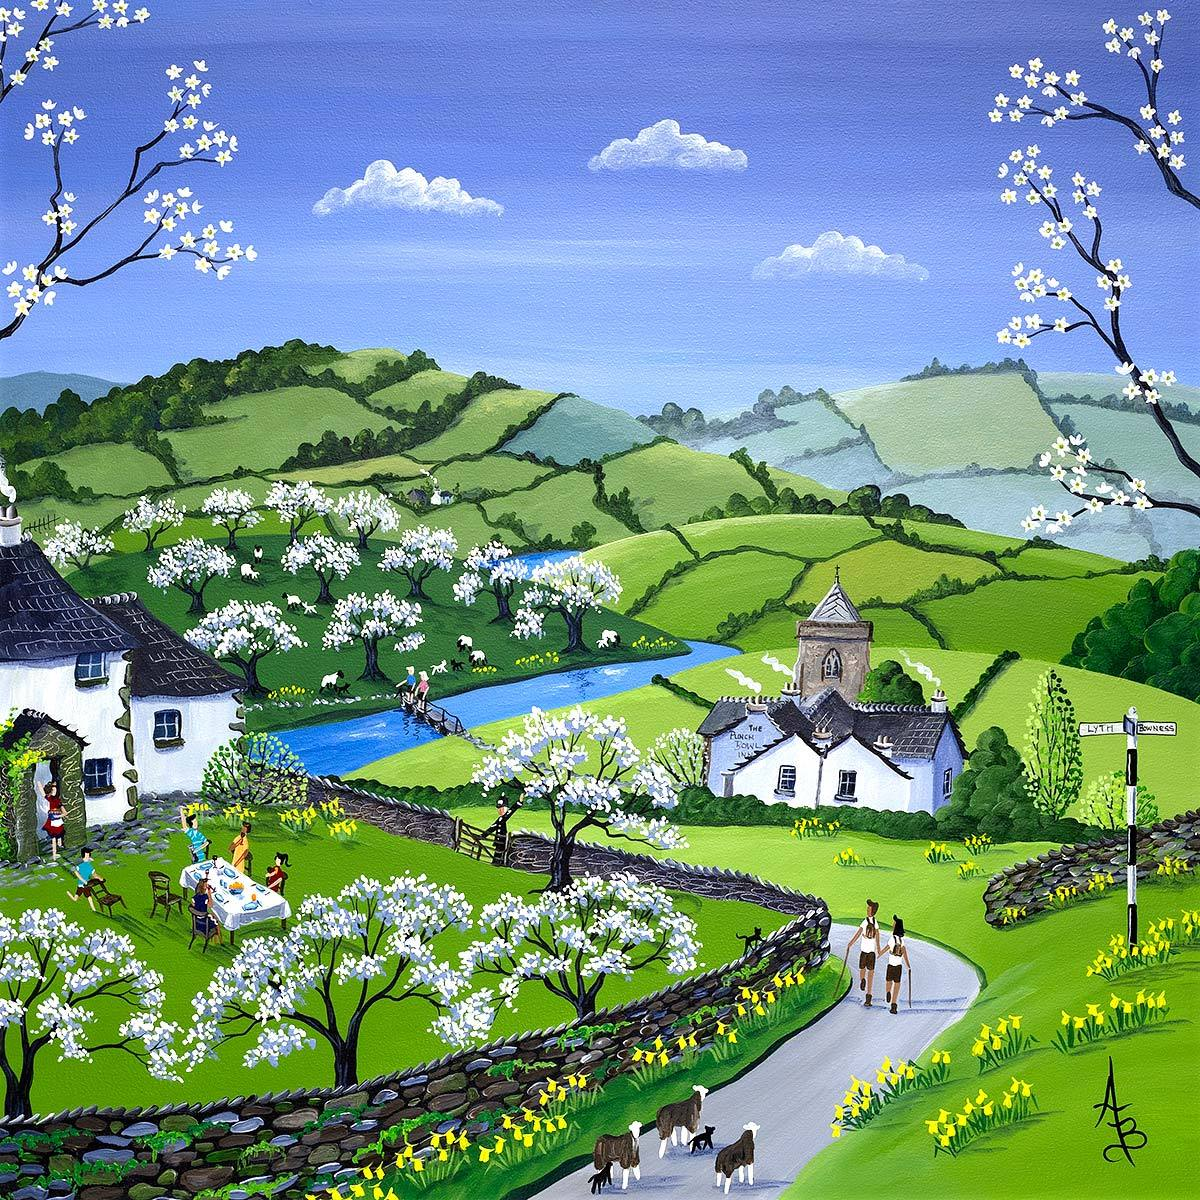 Damson Blossom Lunch, Lyth Valley - Original Anne Blundell Framed